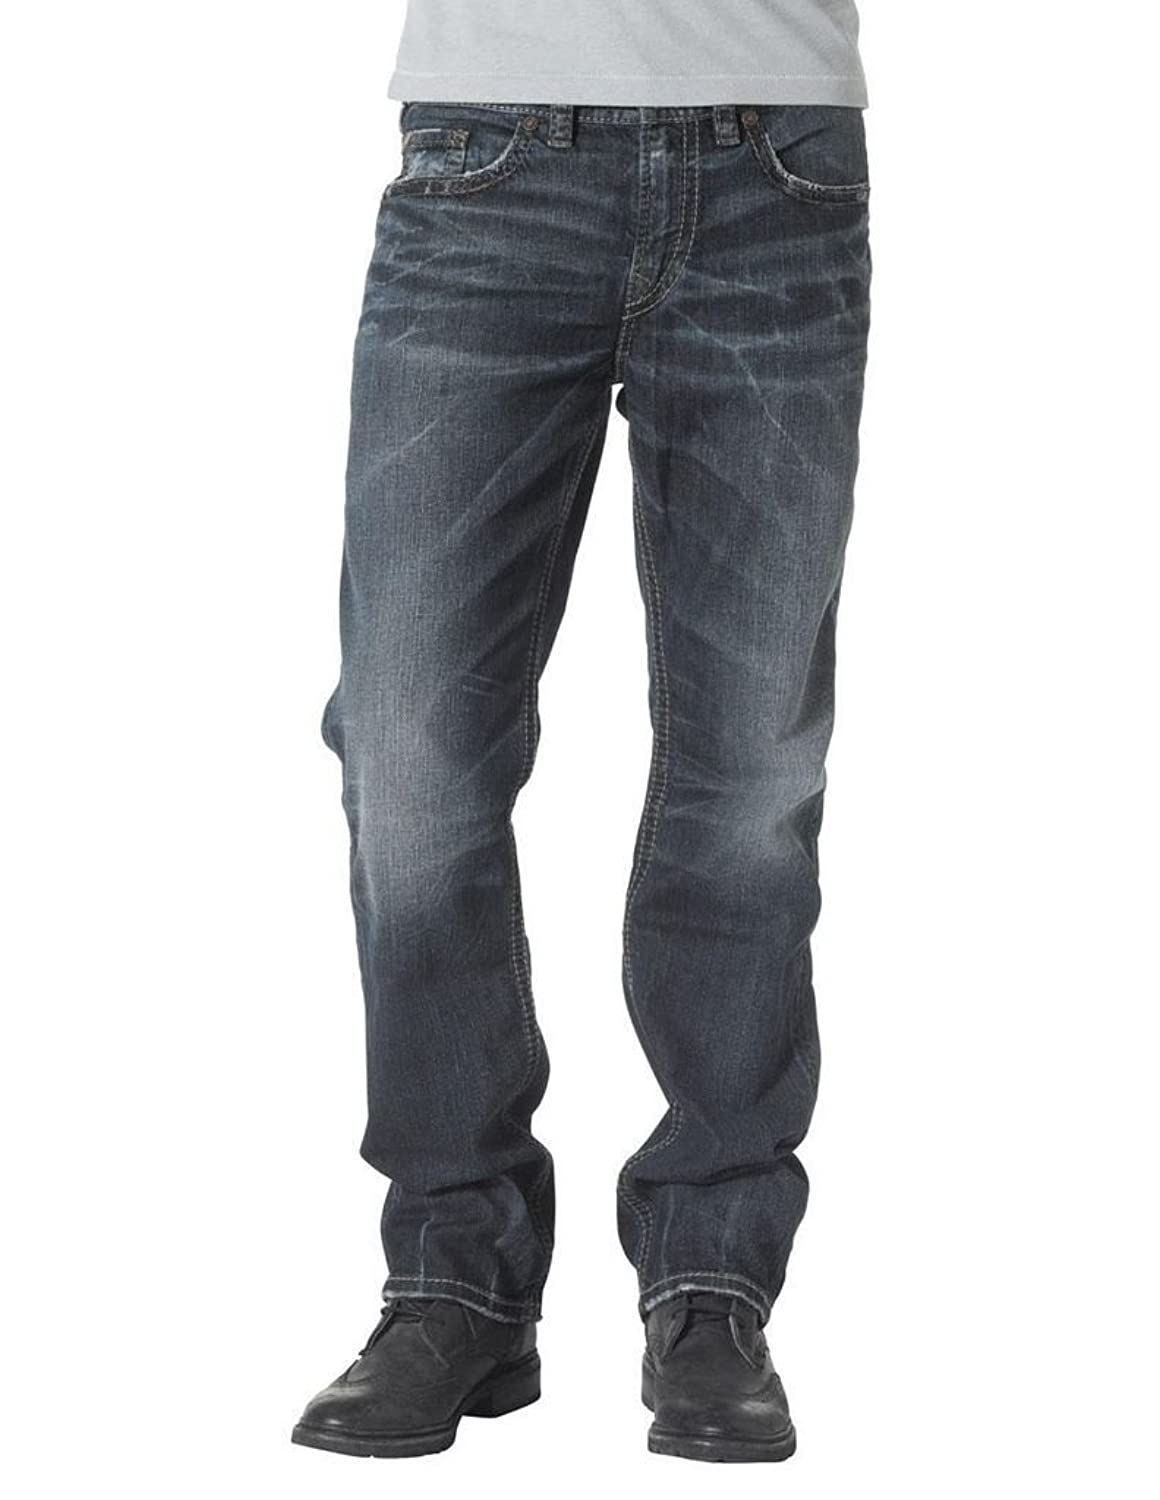 good MEN&39S SILVER JEANS CO. GRAYSON (38X32) - ablenepal.com